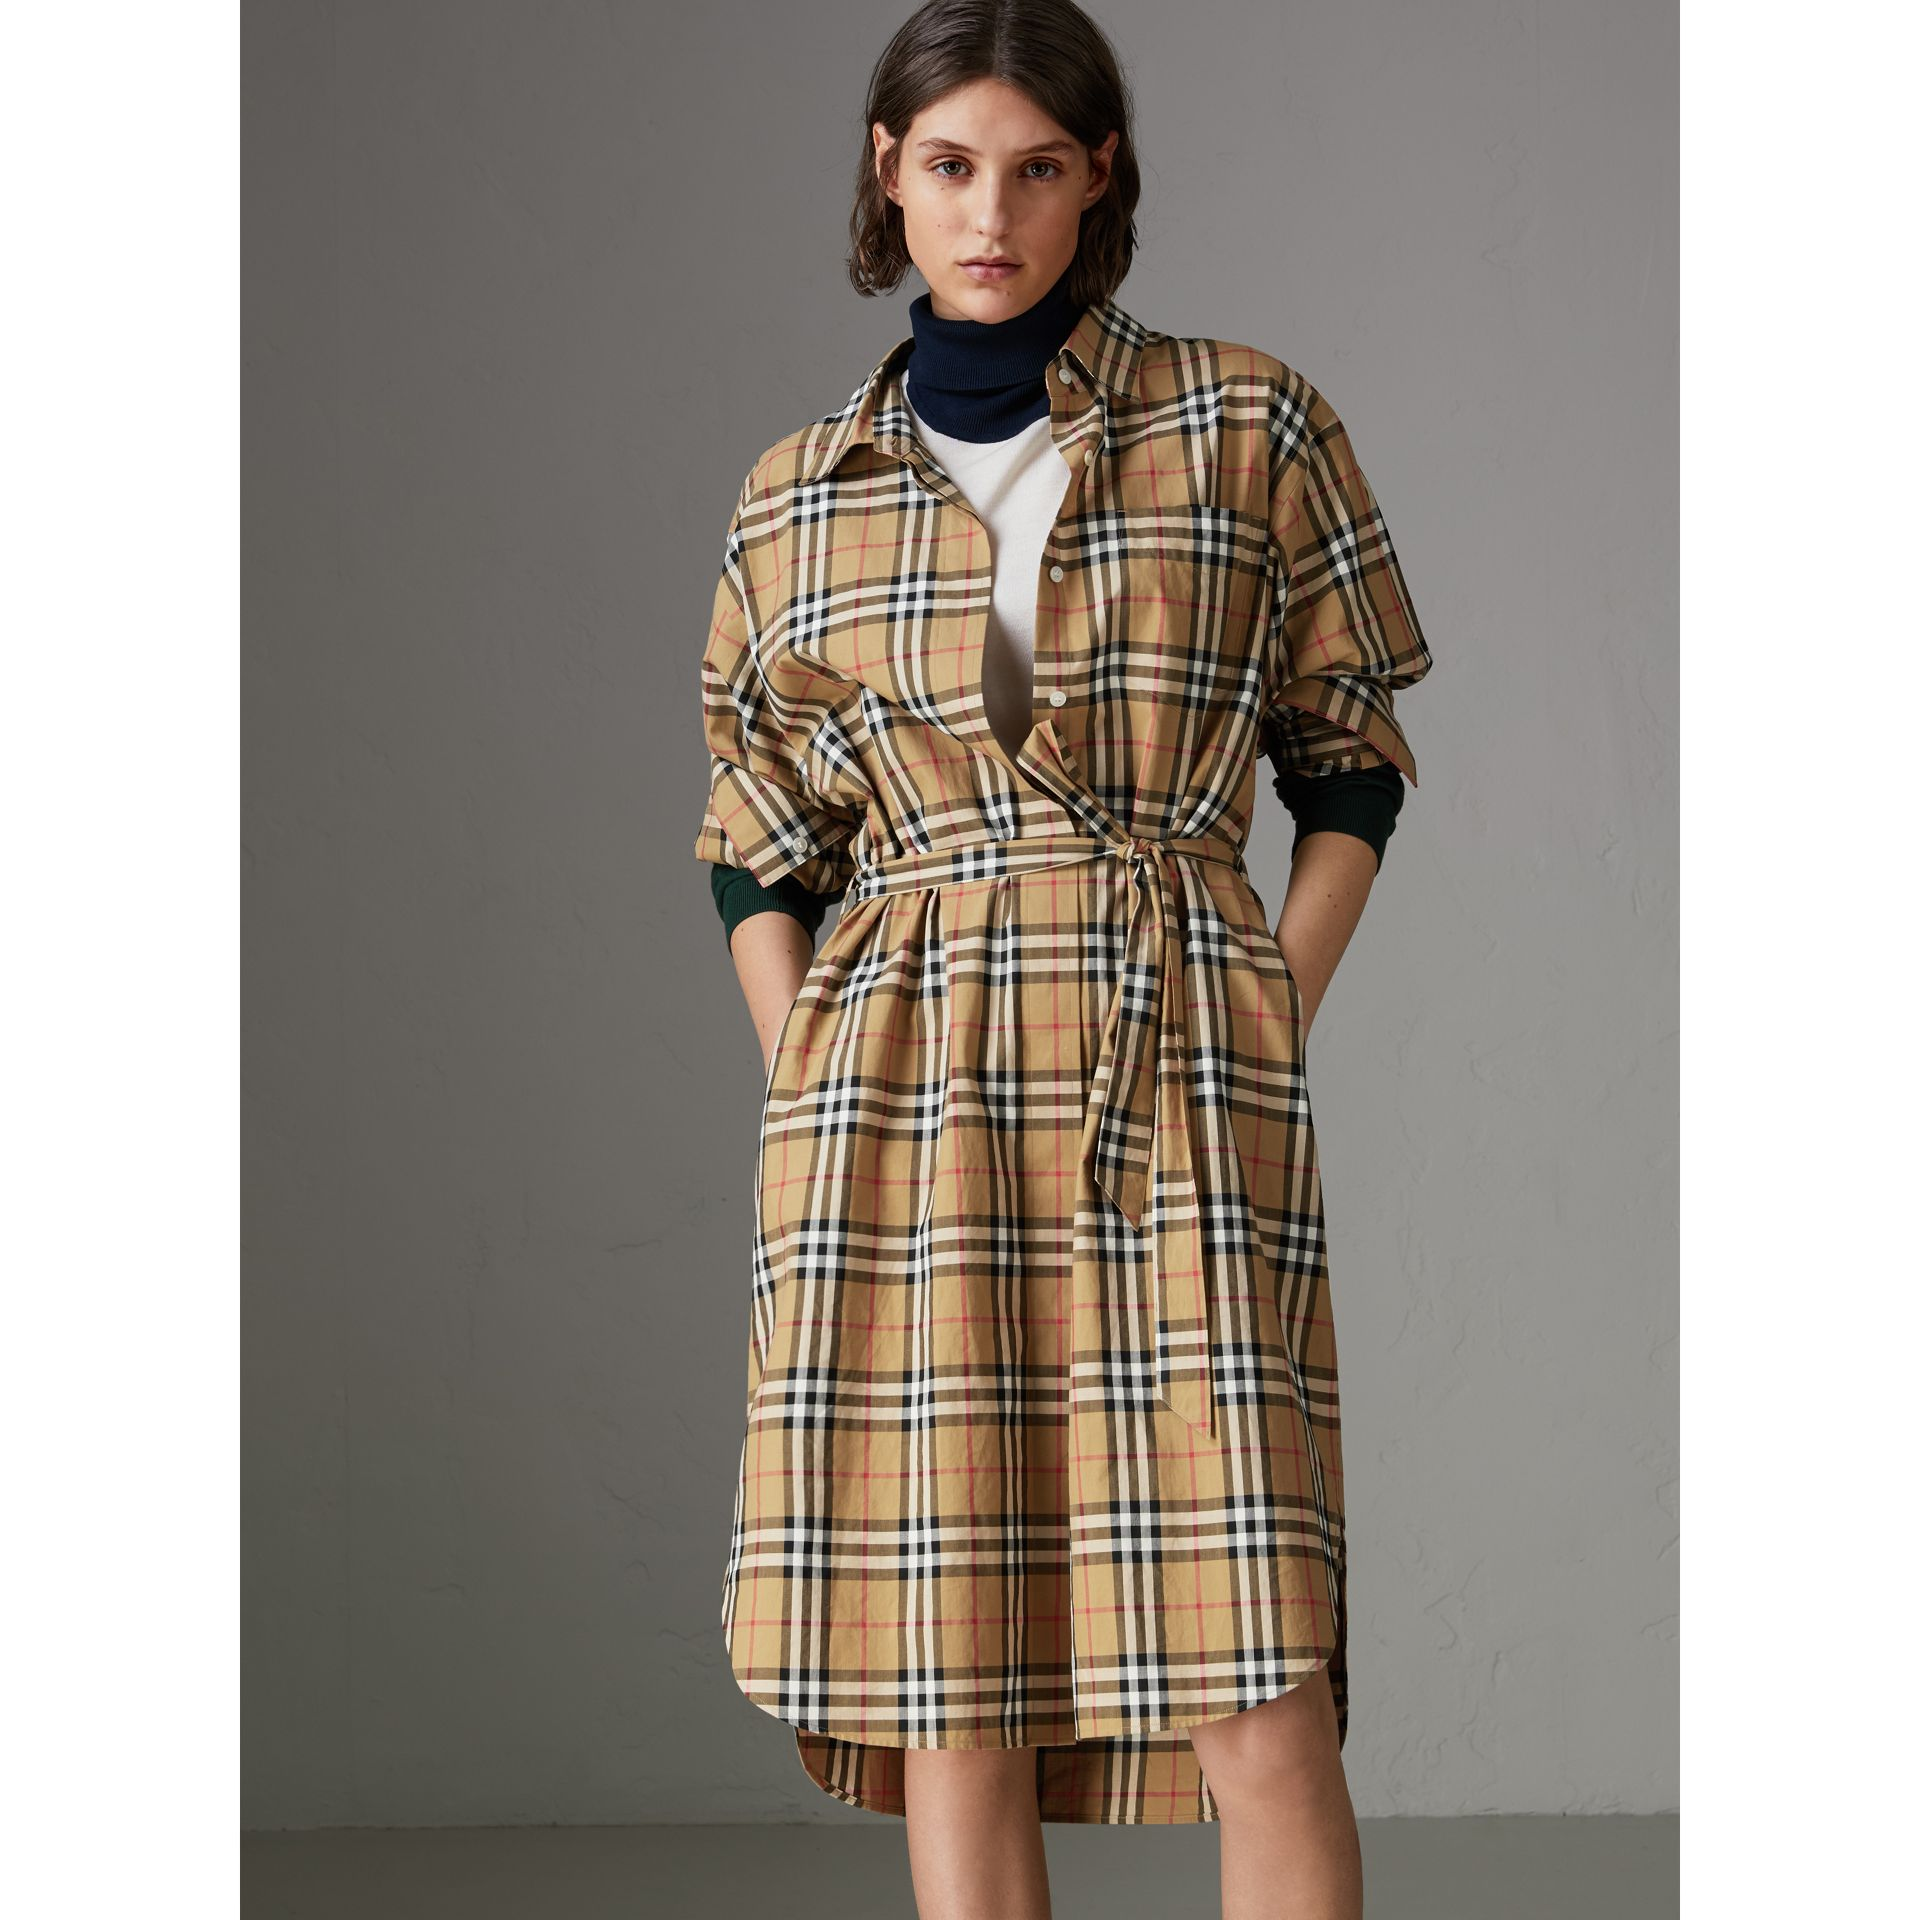 Tie-waist Vintage Check Cotton Shirt Dress in Antique Yellow - Women | Burberry Canada - gallery image 3